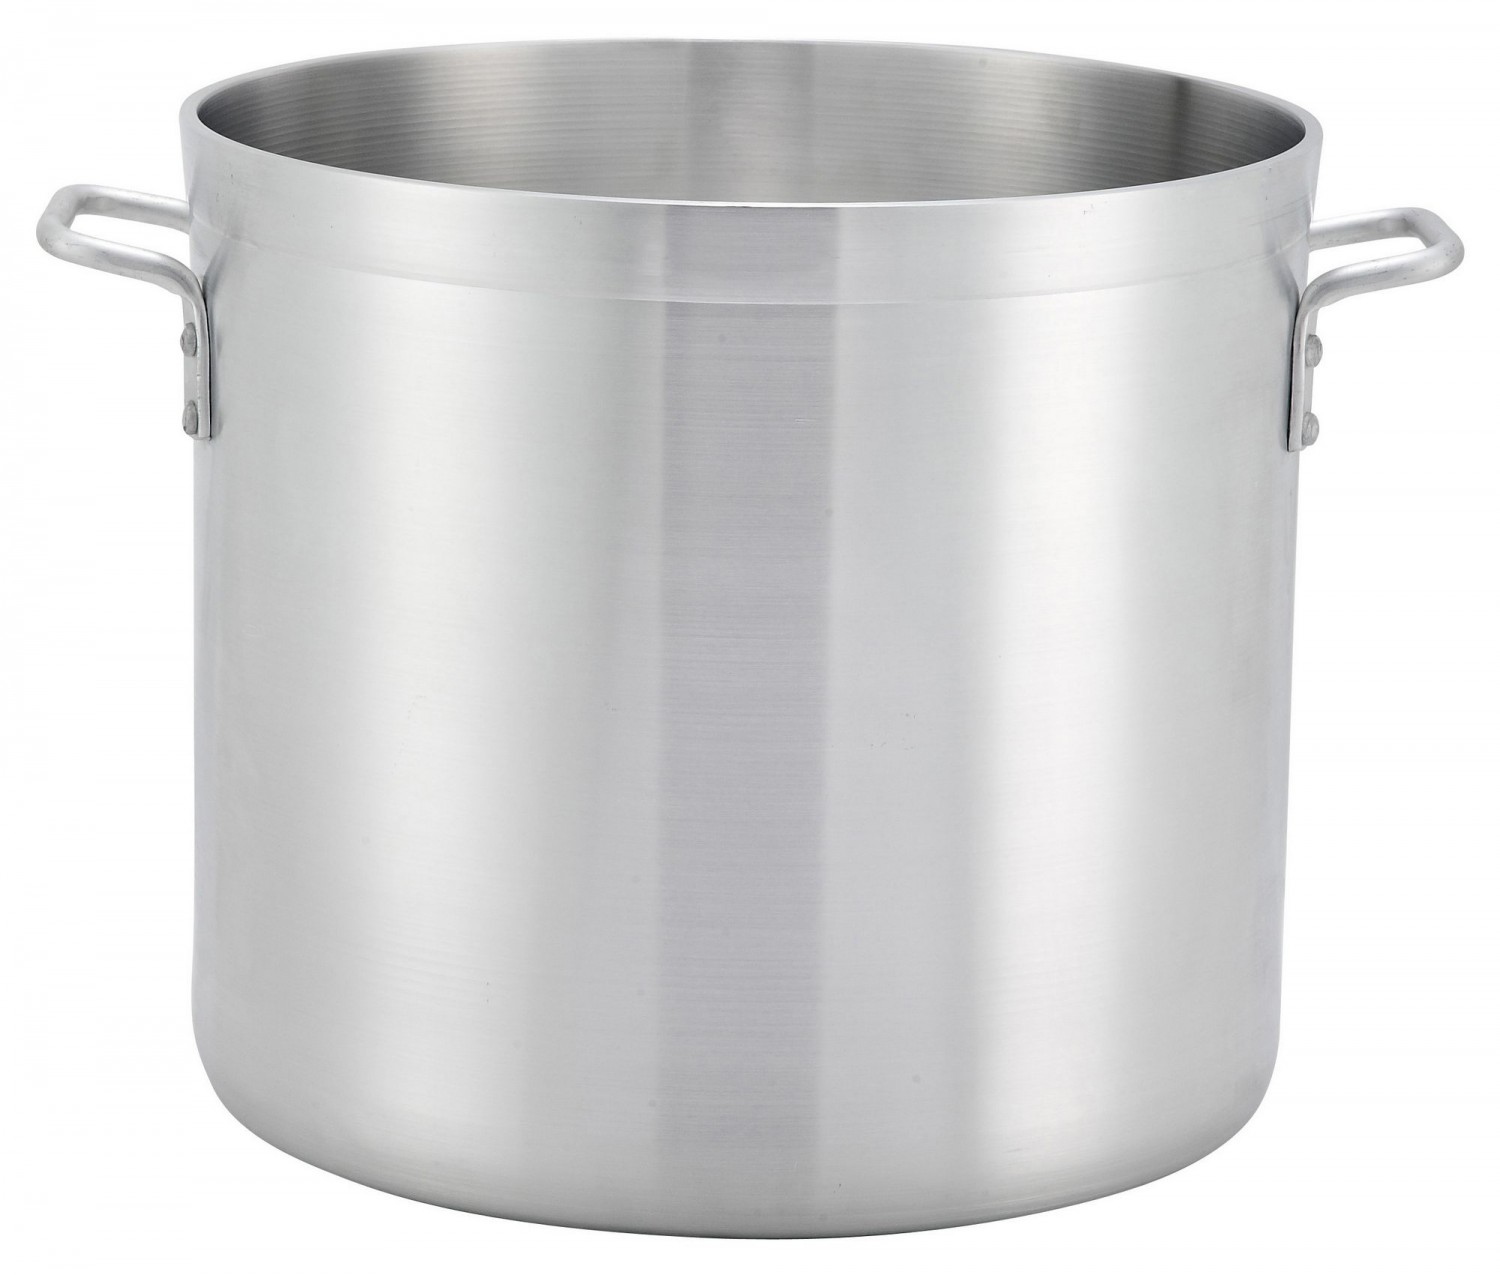 Winco ALHP-100 Precision Aluminum Stock Pot 100 Qt.